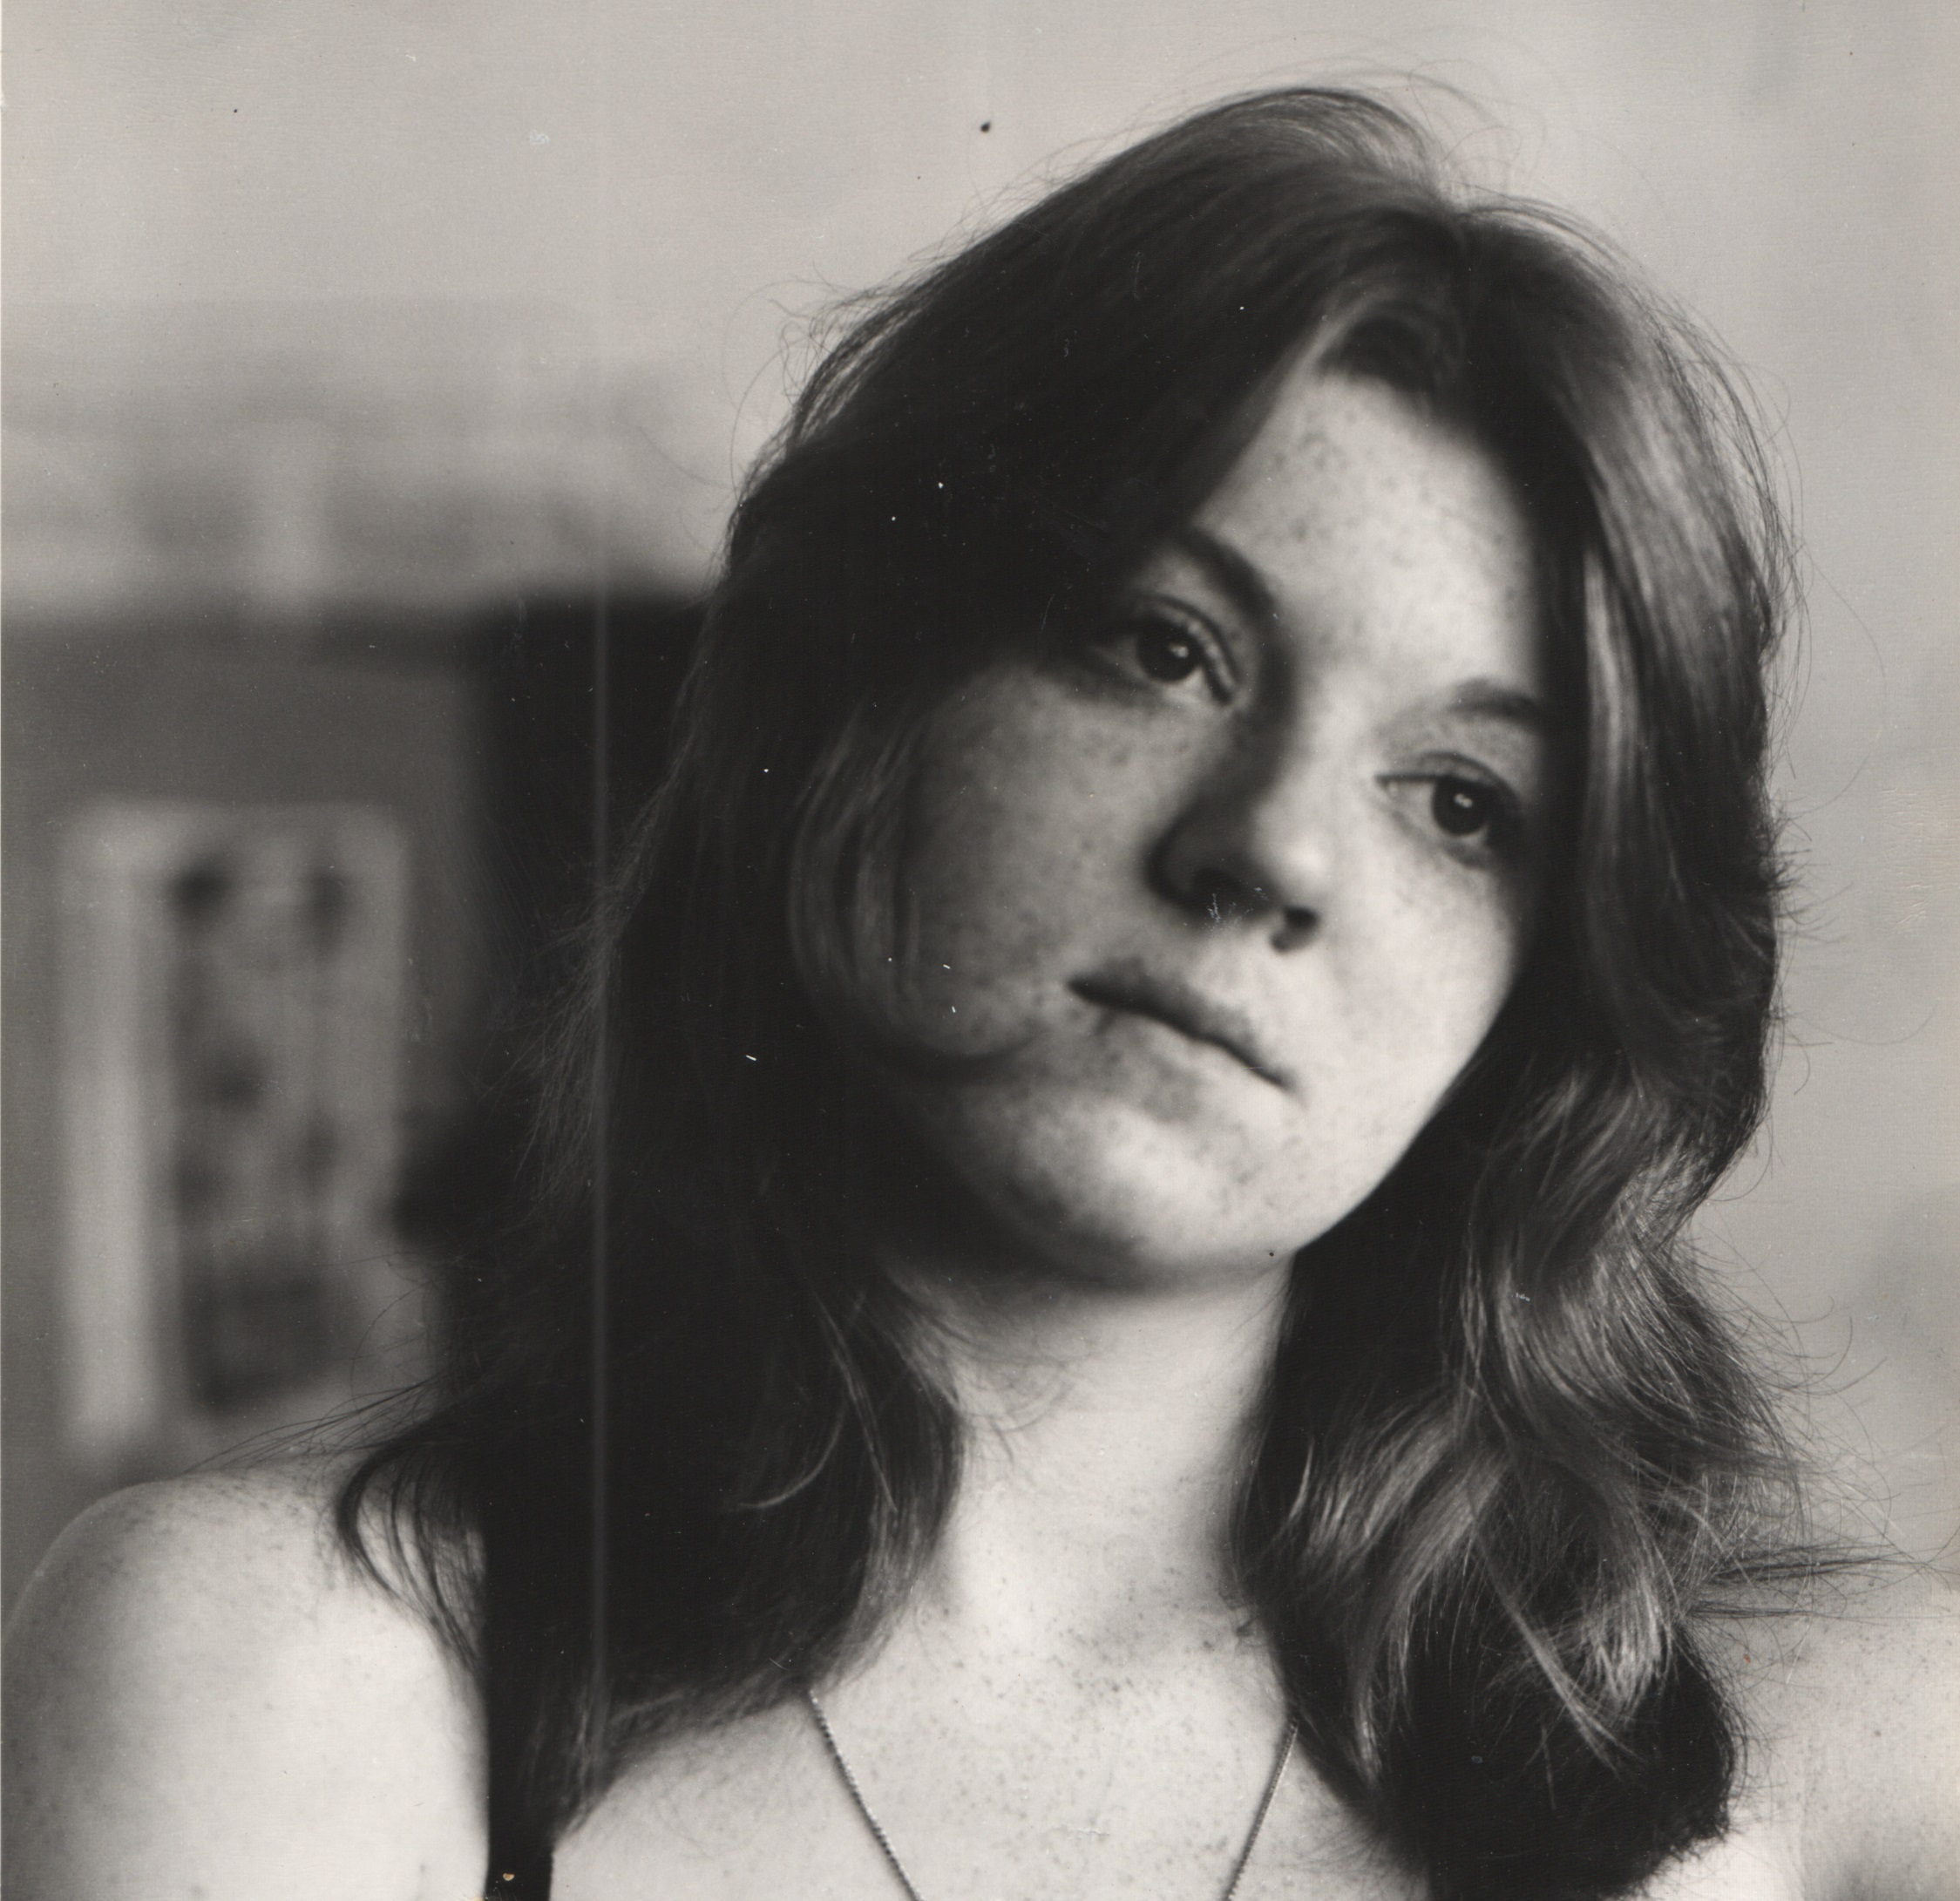 Lois, 1974 - photo by L. Ron Hubbard